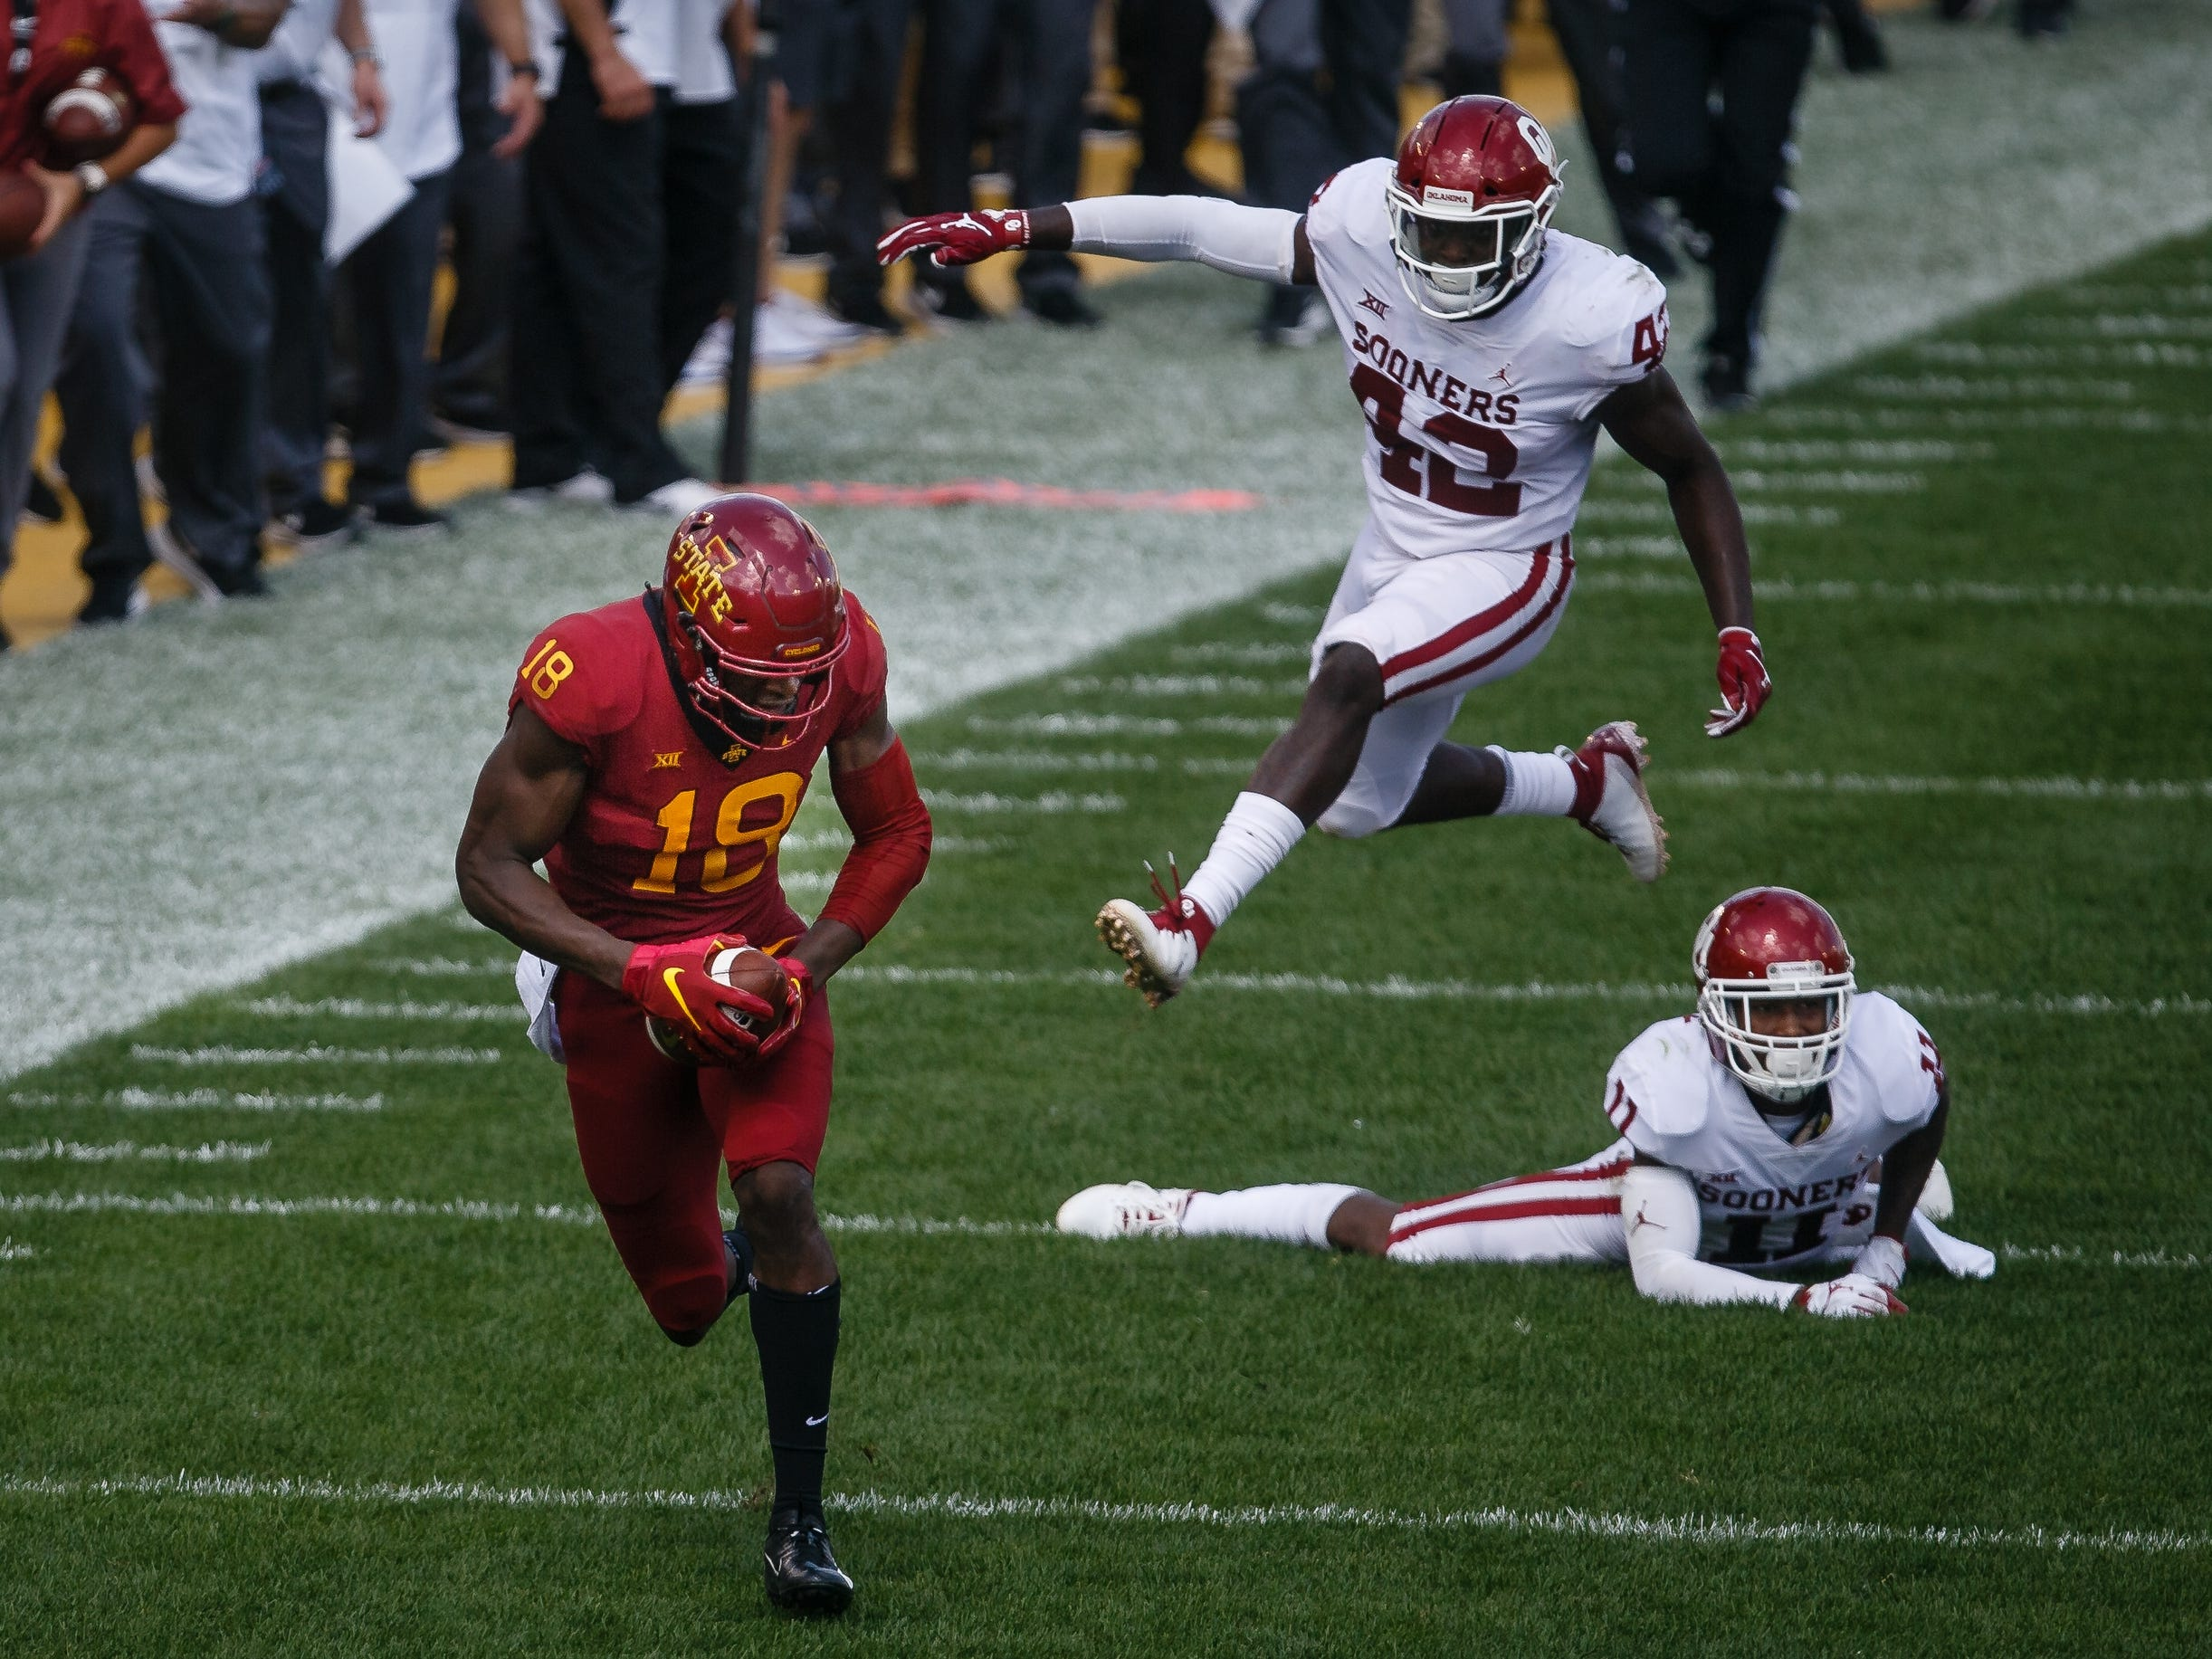 Iowa State's Hakeem Butler (18) makes runs it in for a touchdown to start the third quarter of their football game at Jack Trice Stadium on Saturday, Sept. 15, 2018 in Ames. Oklahoma would go on to win 37-27.